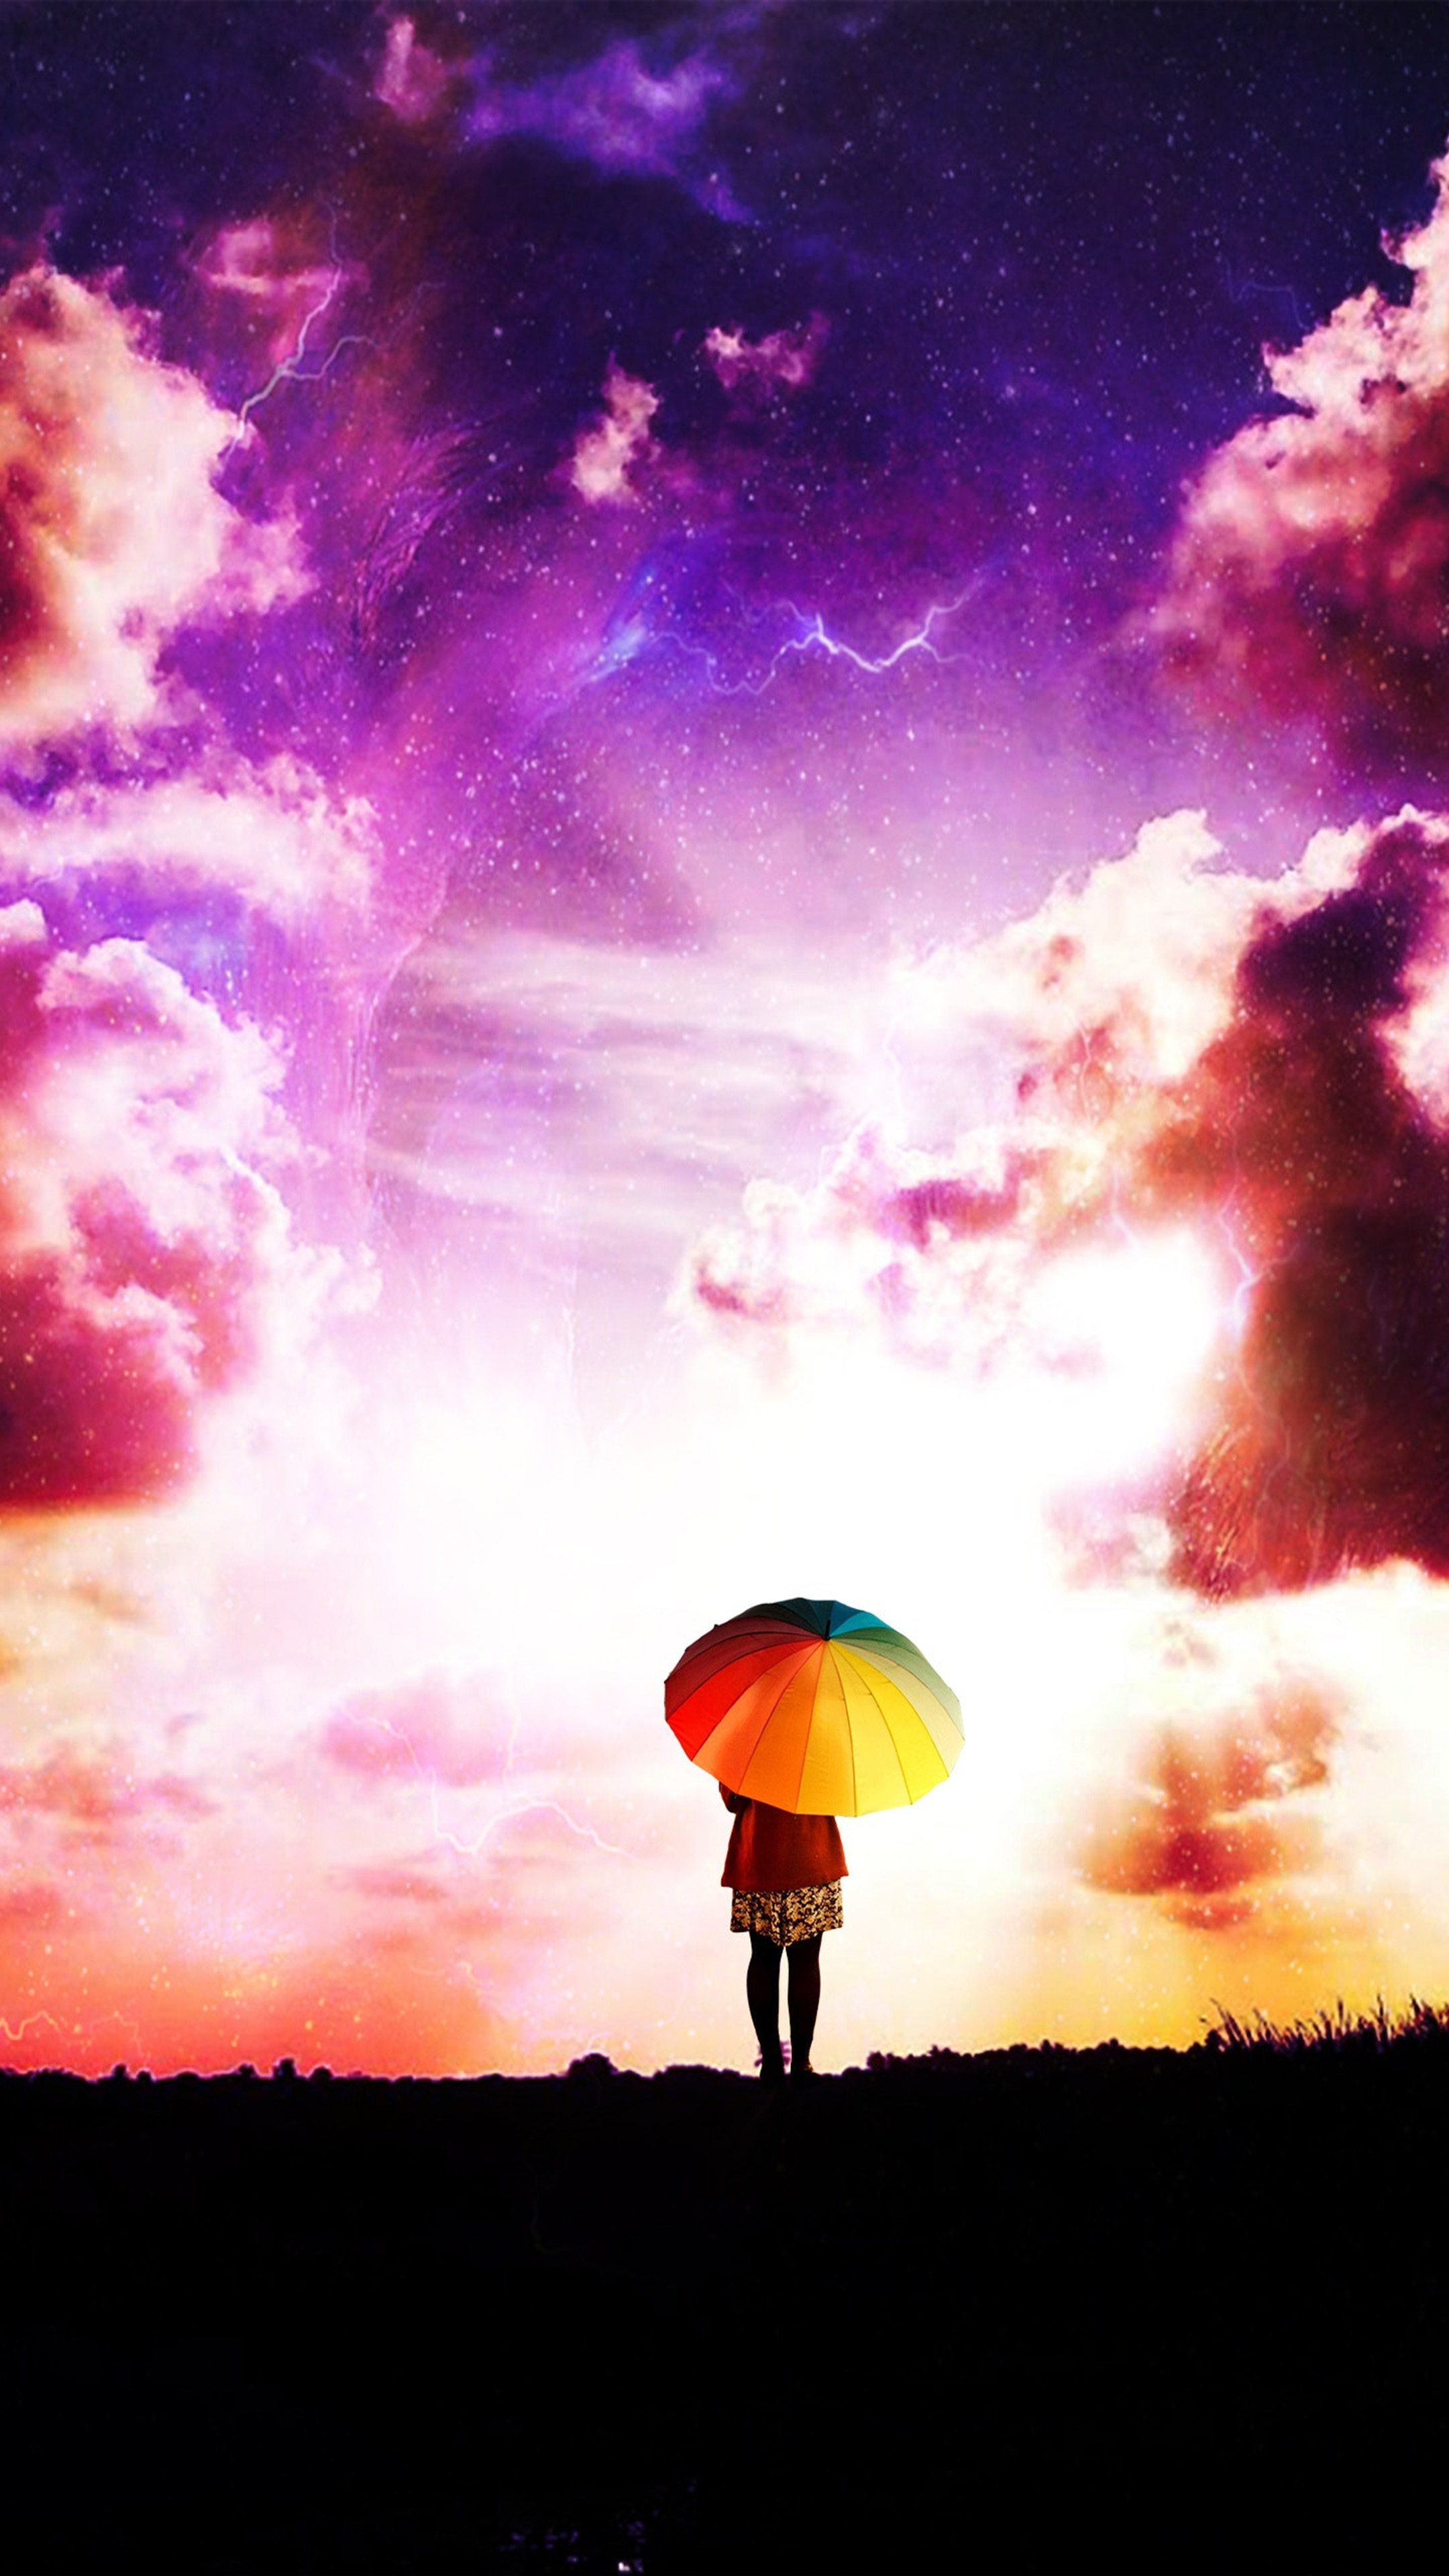 Dwayne Johnson Quotes Wallpaper Download Lone Girl Colorful Umbrella Sunset Clouds Free